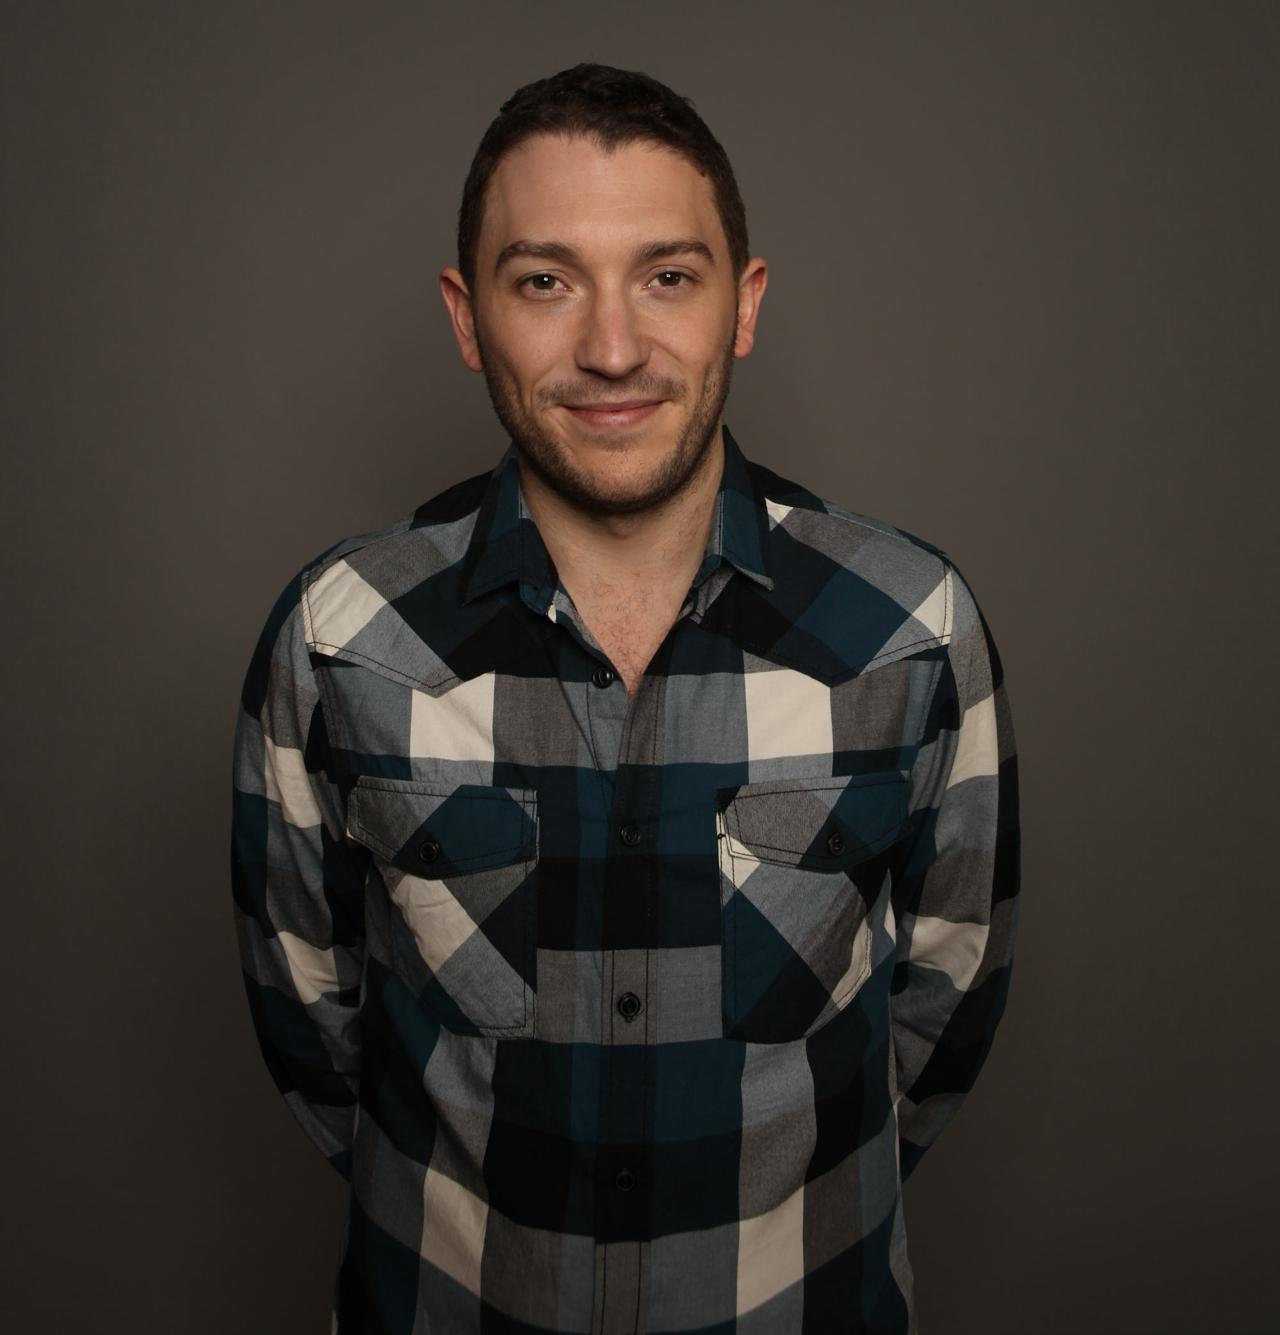 Husband Material: Jon Richardson